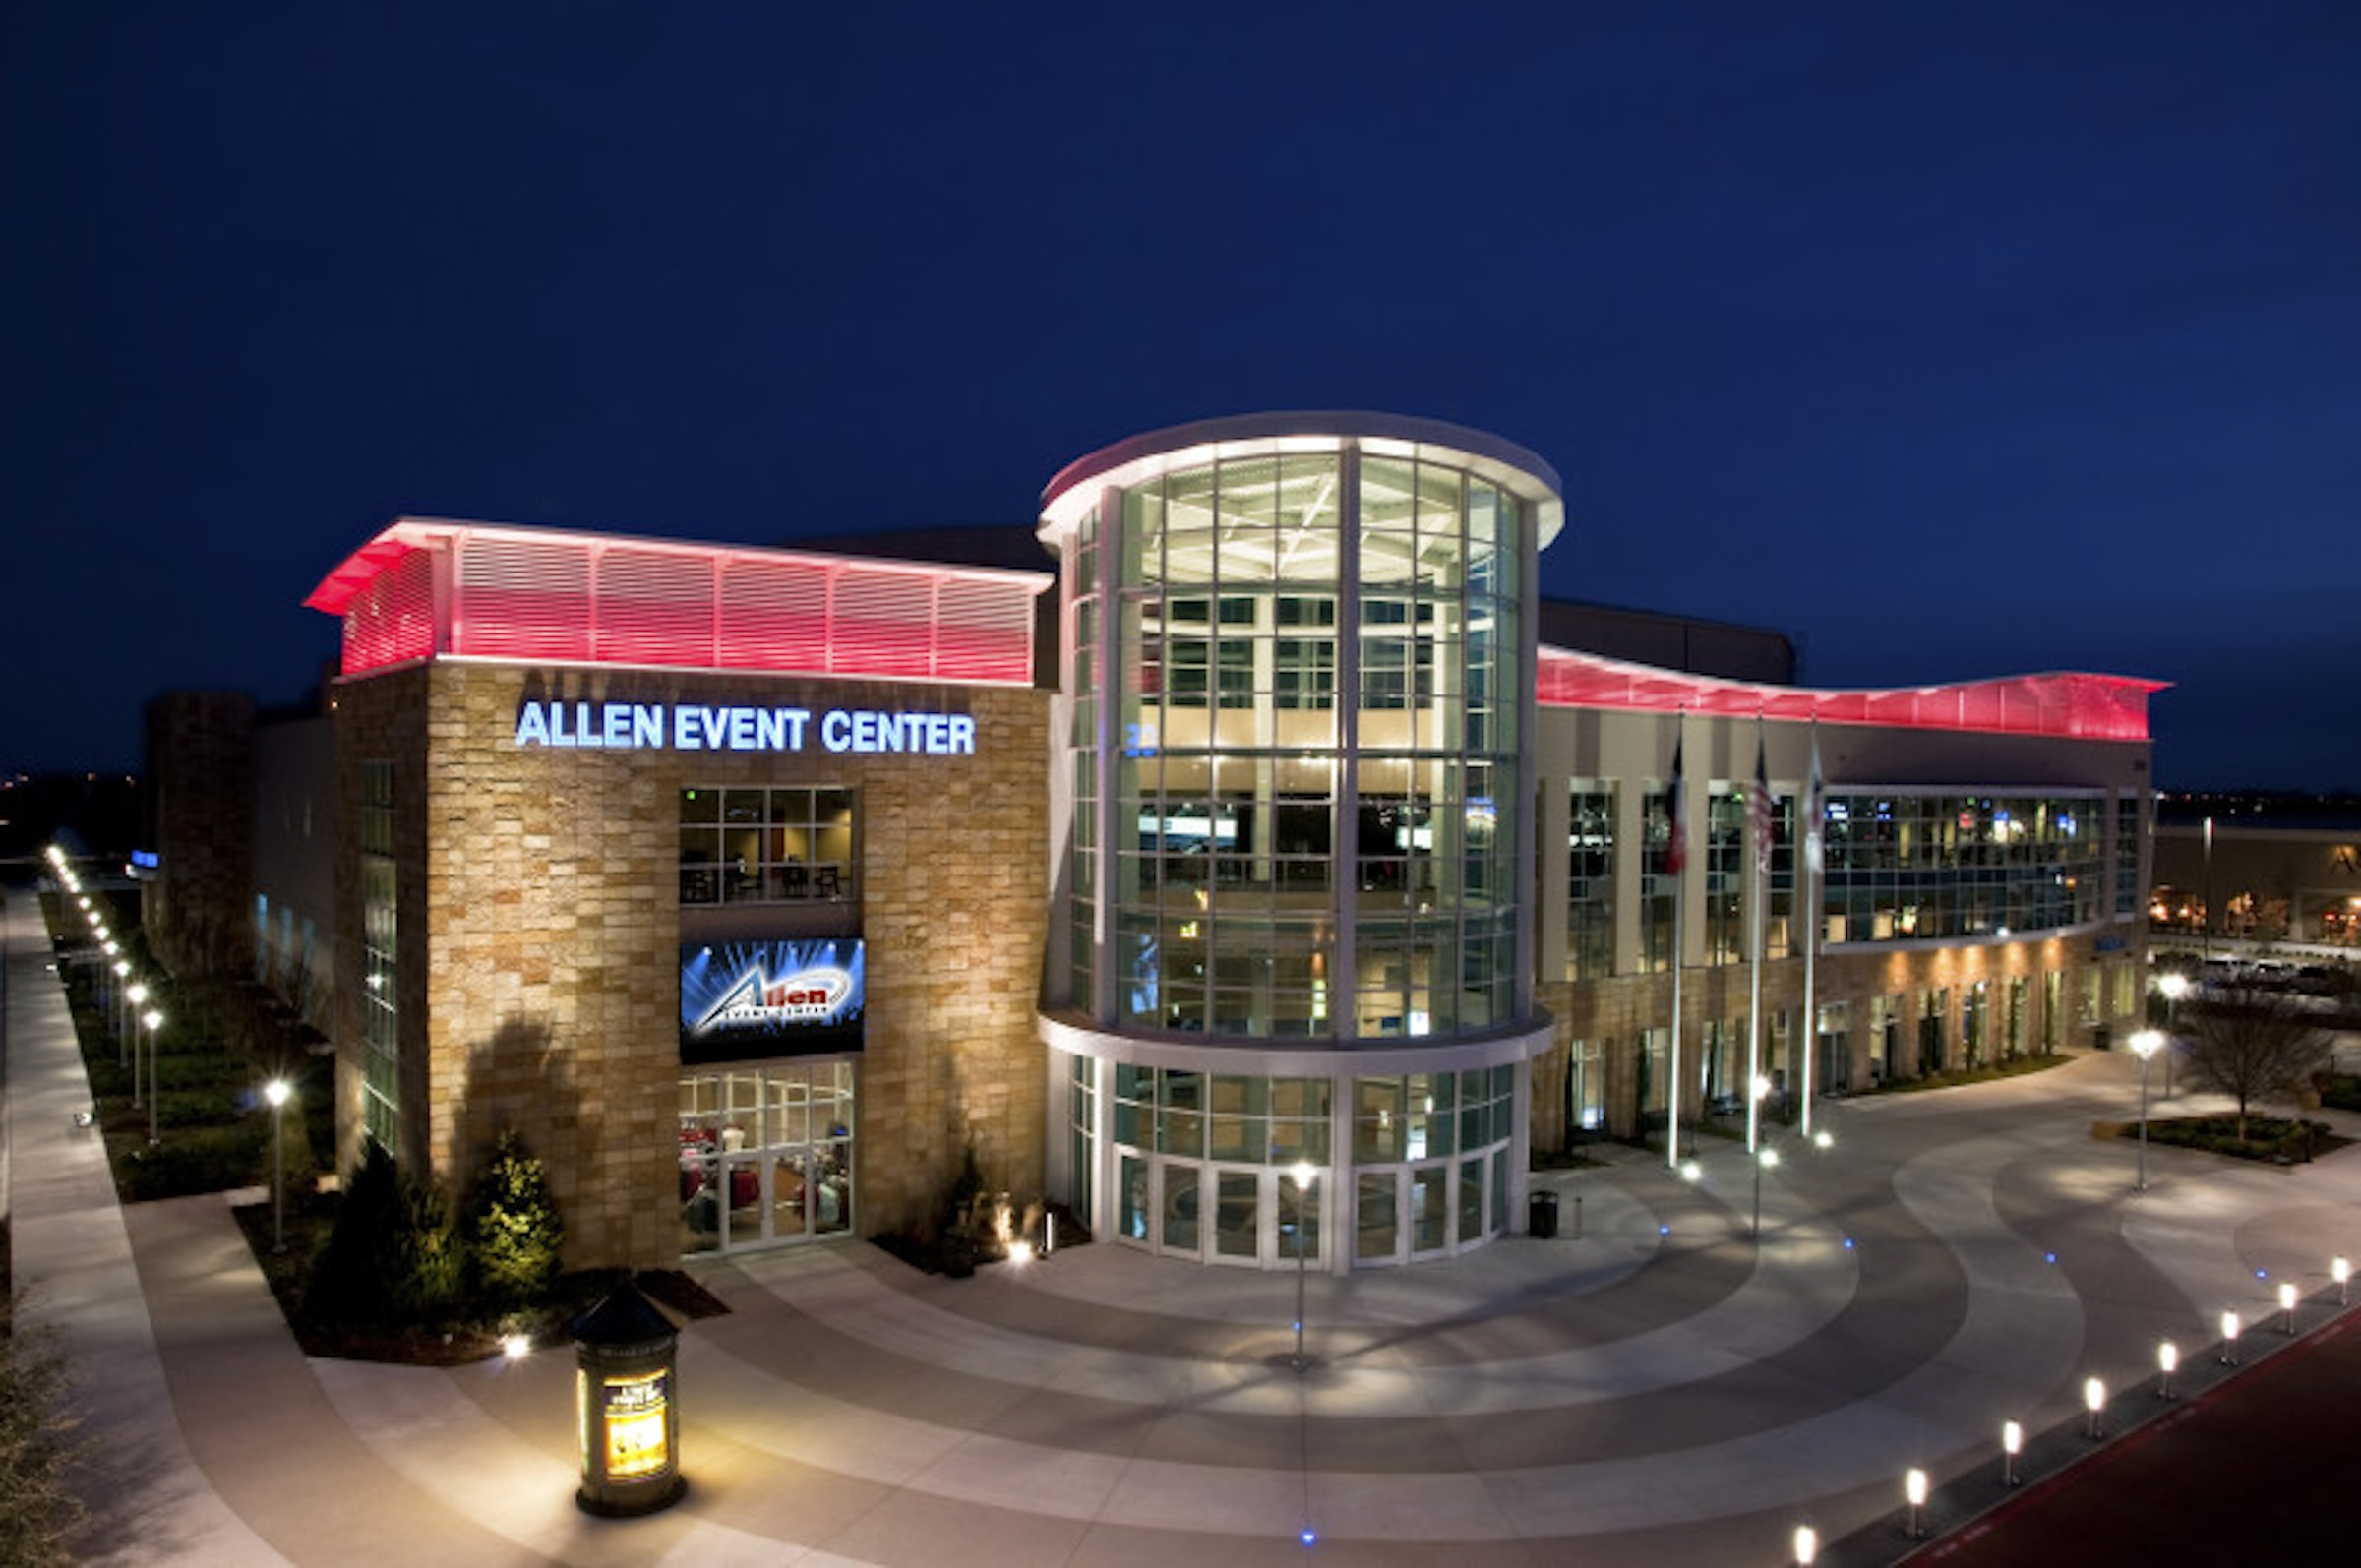 Allen Event Center in Beyond Dallas